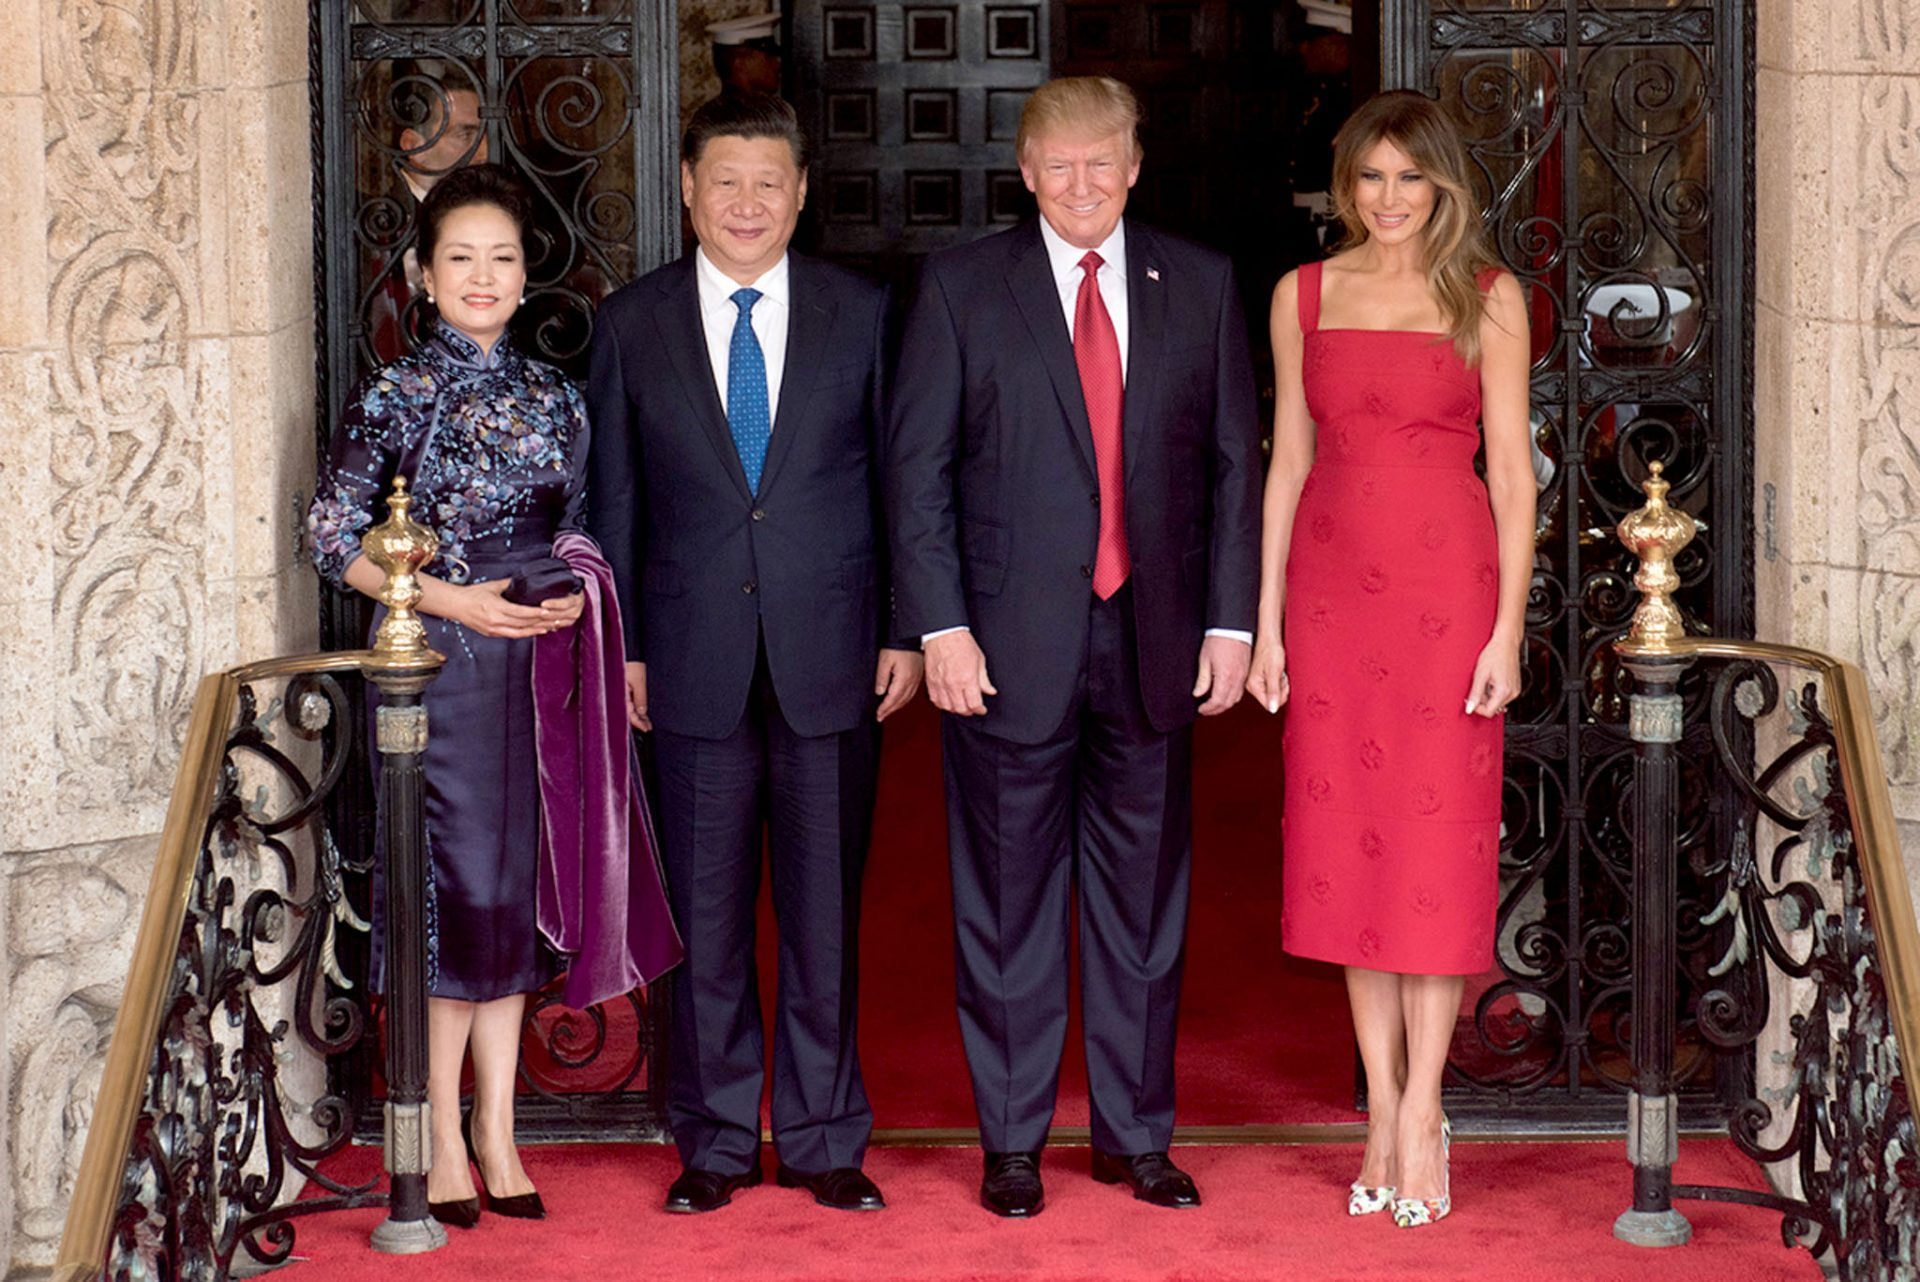 President Donald Trump and First Lady Melania Trump pose for a photo with Chinese President Xi Jingping and his wife, Mrs. Peng Liyuan, Thursday, April 6, 2017 at the entrance of Mar-a-Lago in Palm Beach, Fl. (Image: Official White Photo by D. Myles Cullen)